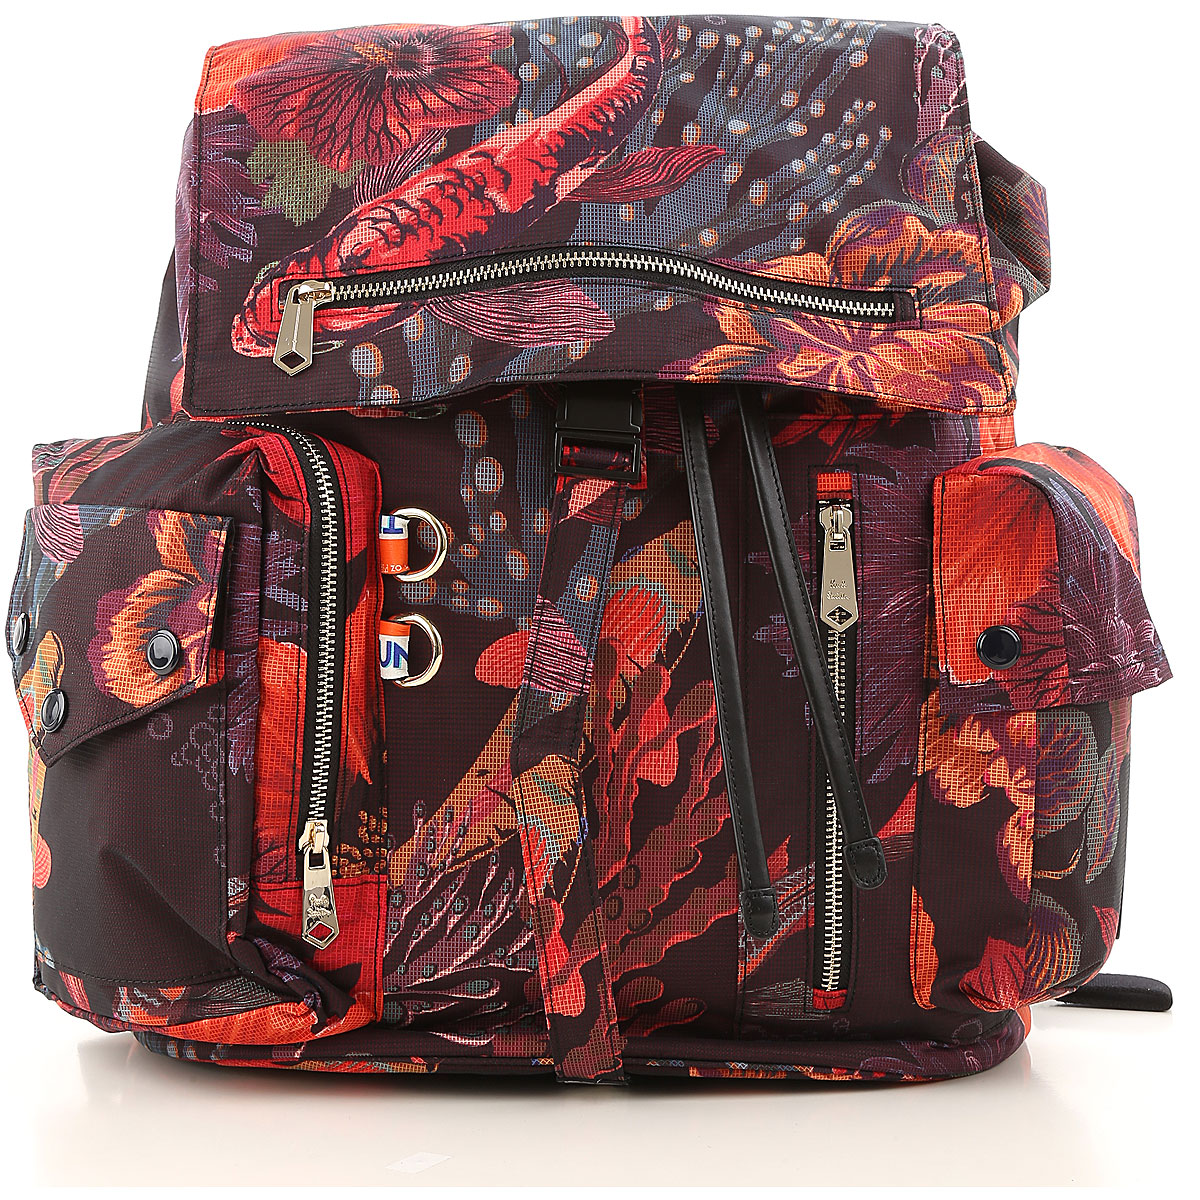 Image of Paul Smith Backpack for Men, Multicolor, Coated Canvas, 2017